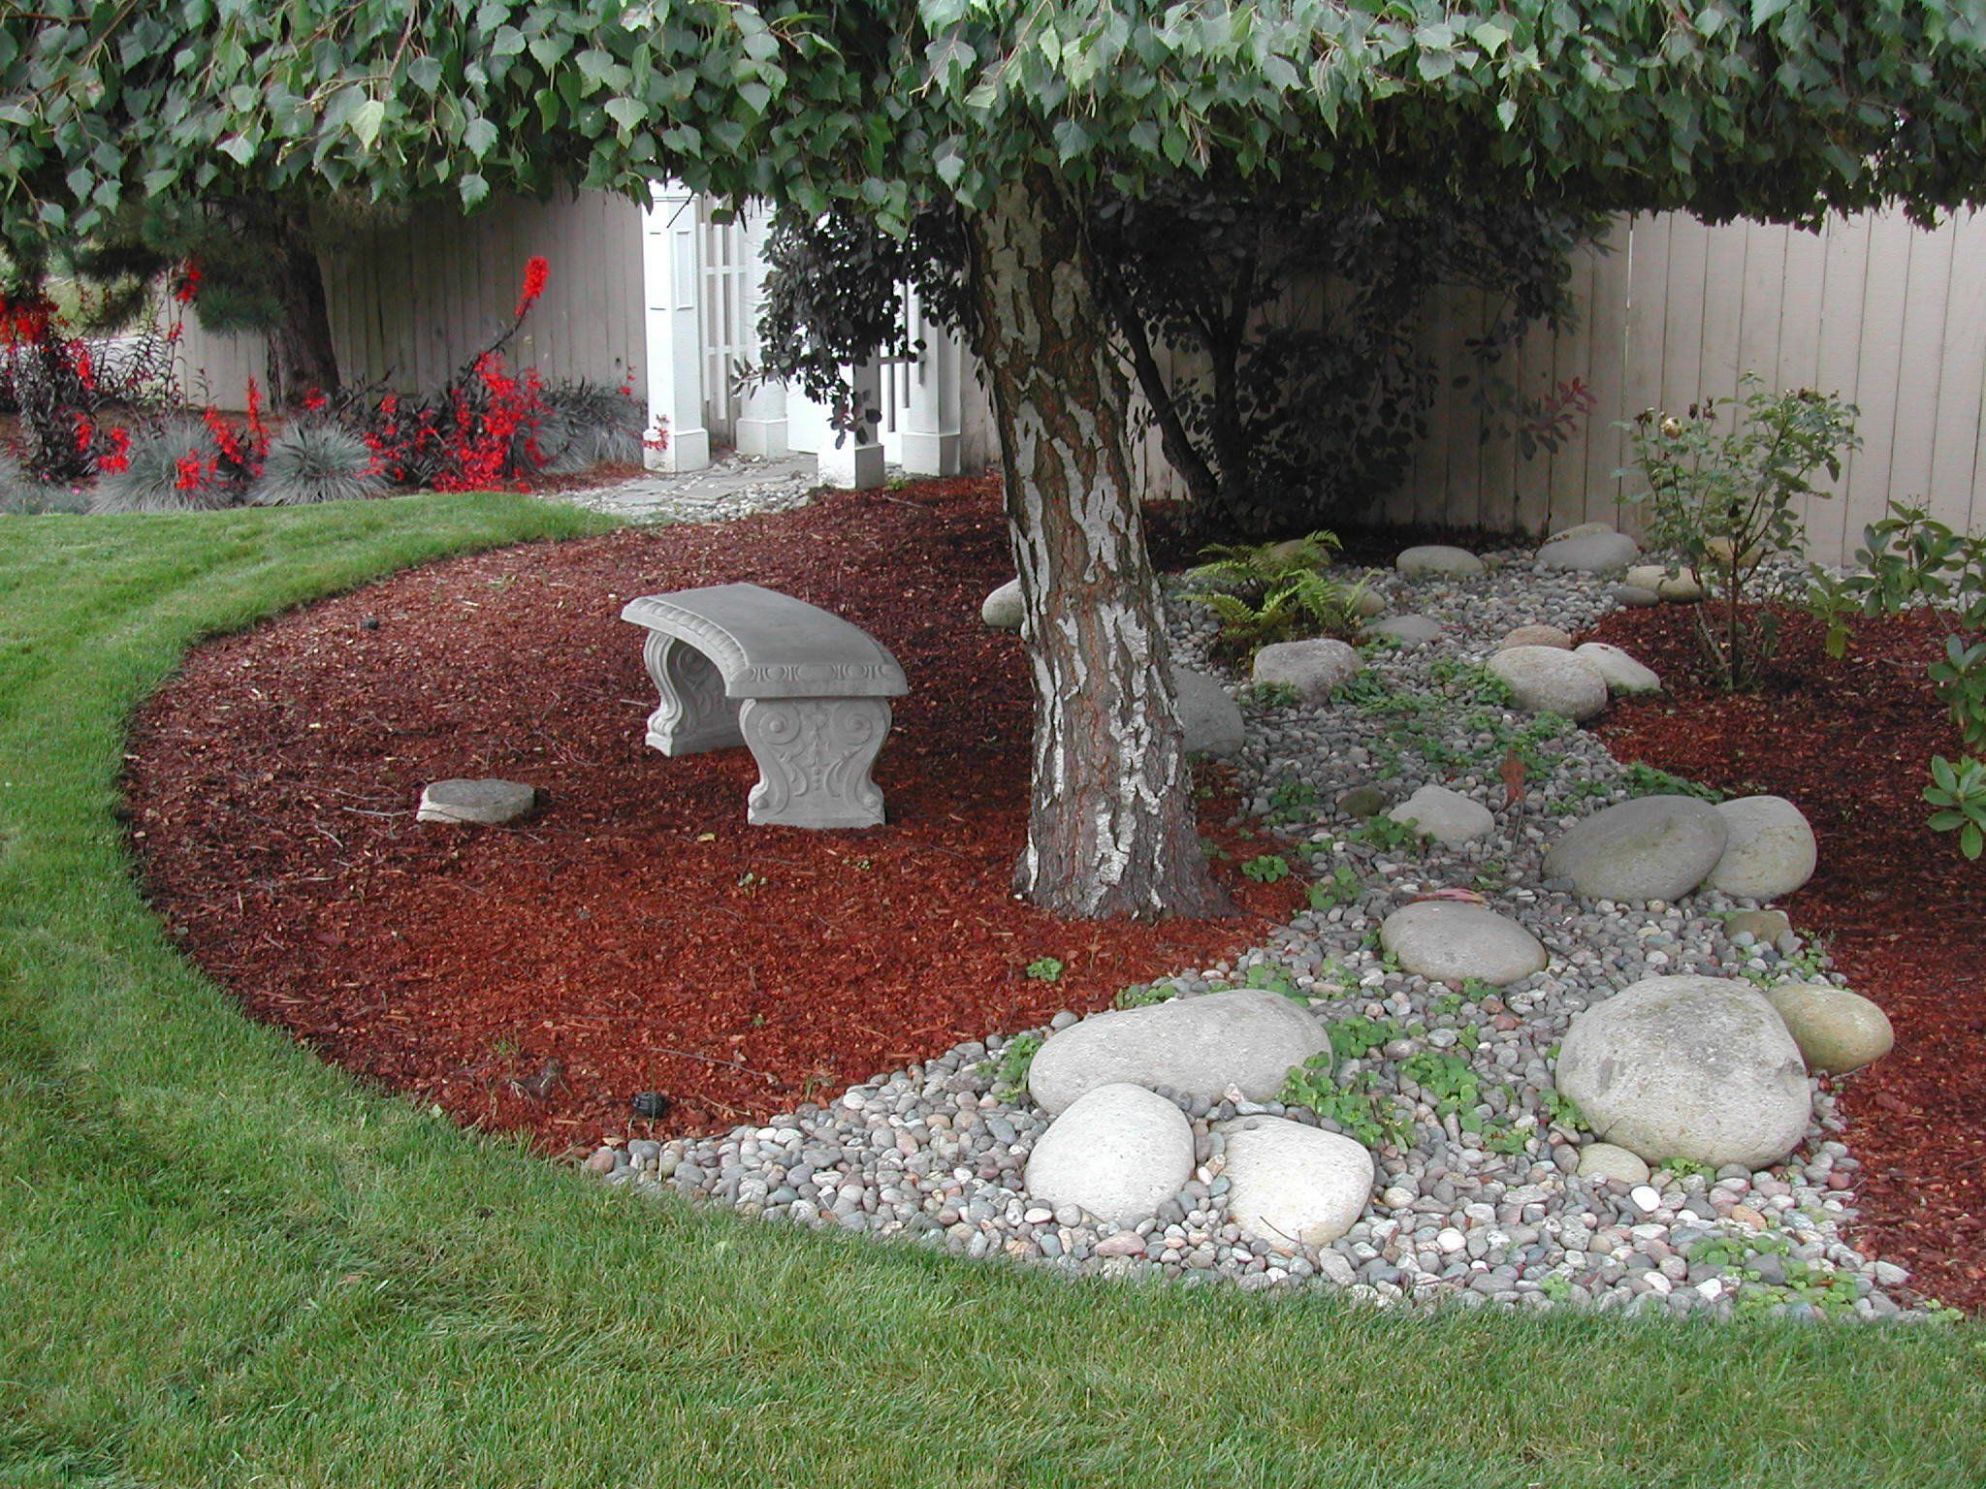 pictures of landscaped backyard ideas | Small backyard landscaping ..